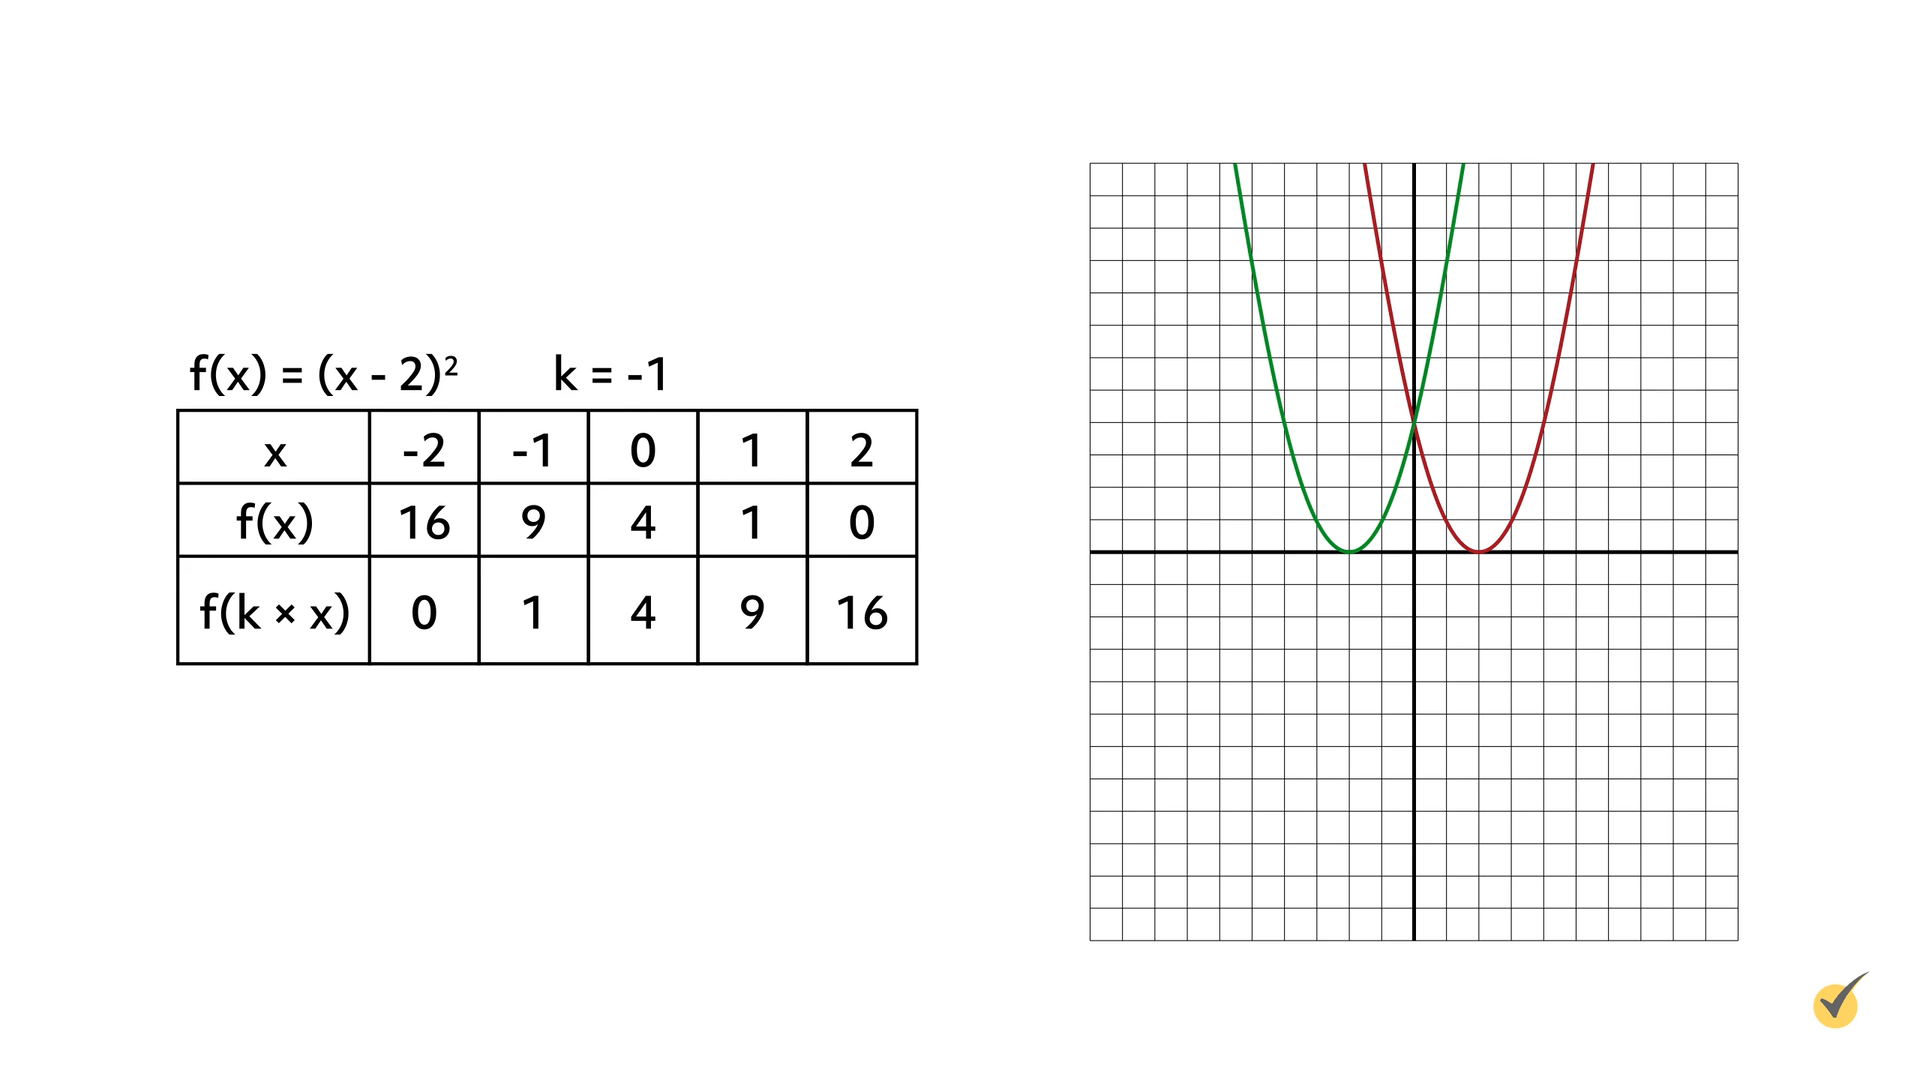 Image of f(x)=(x-2)^2 and k=-1 plotted on a graph.